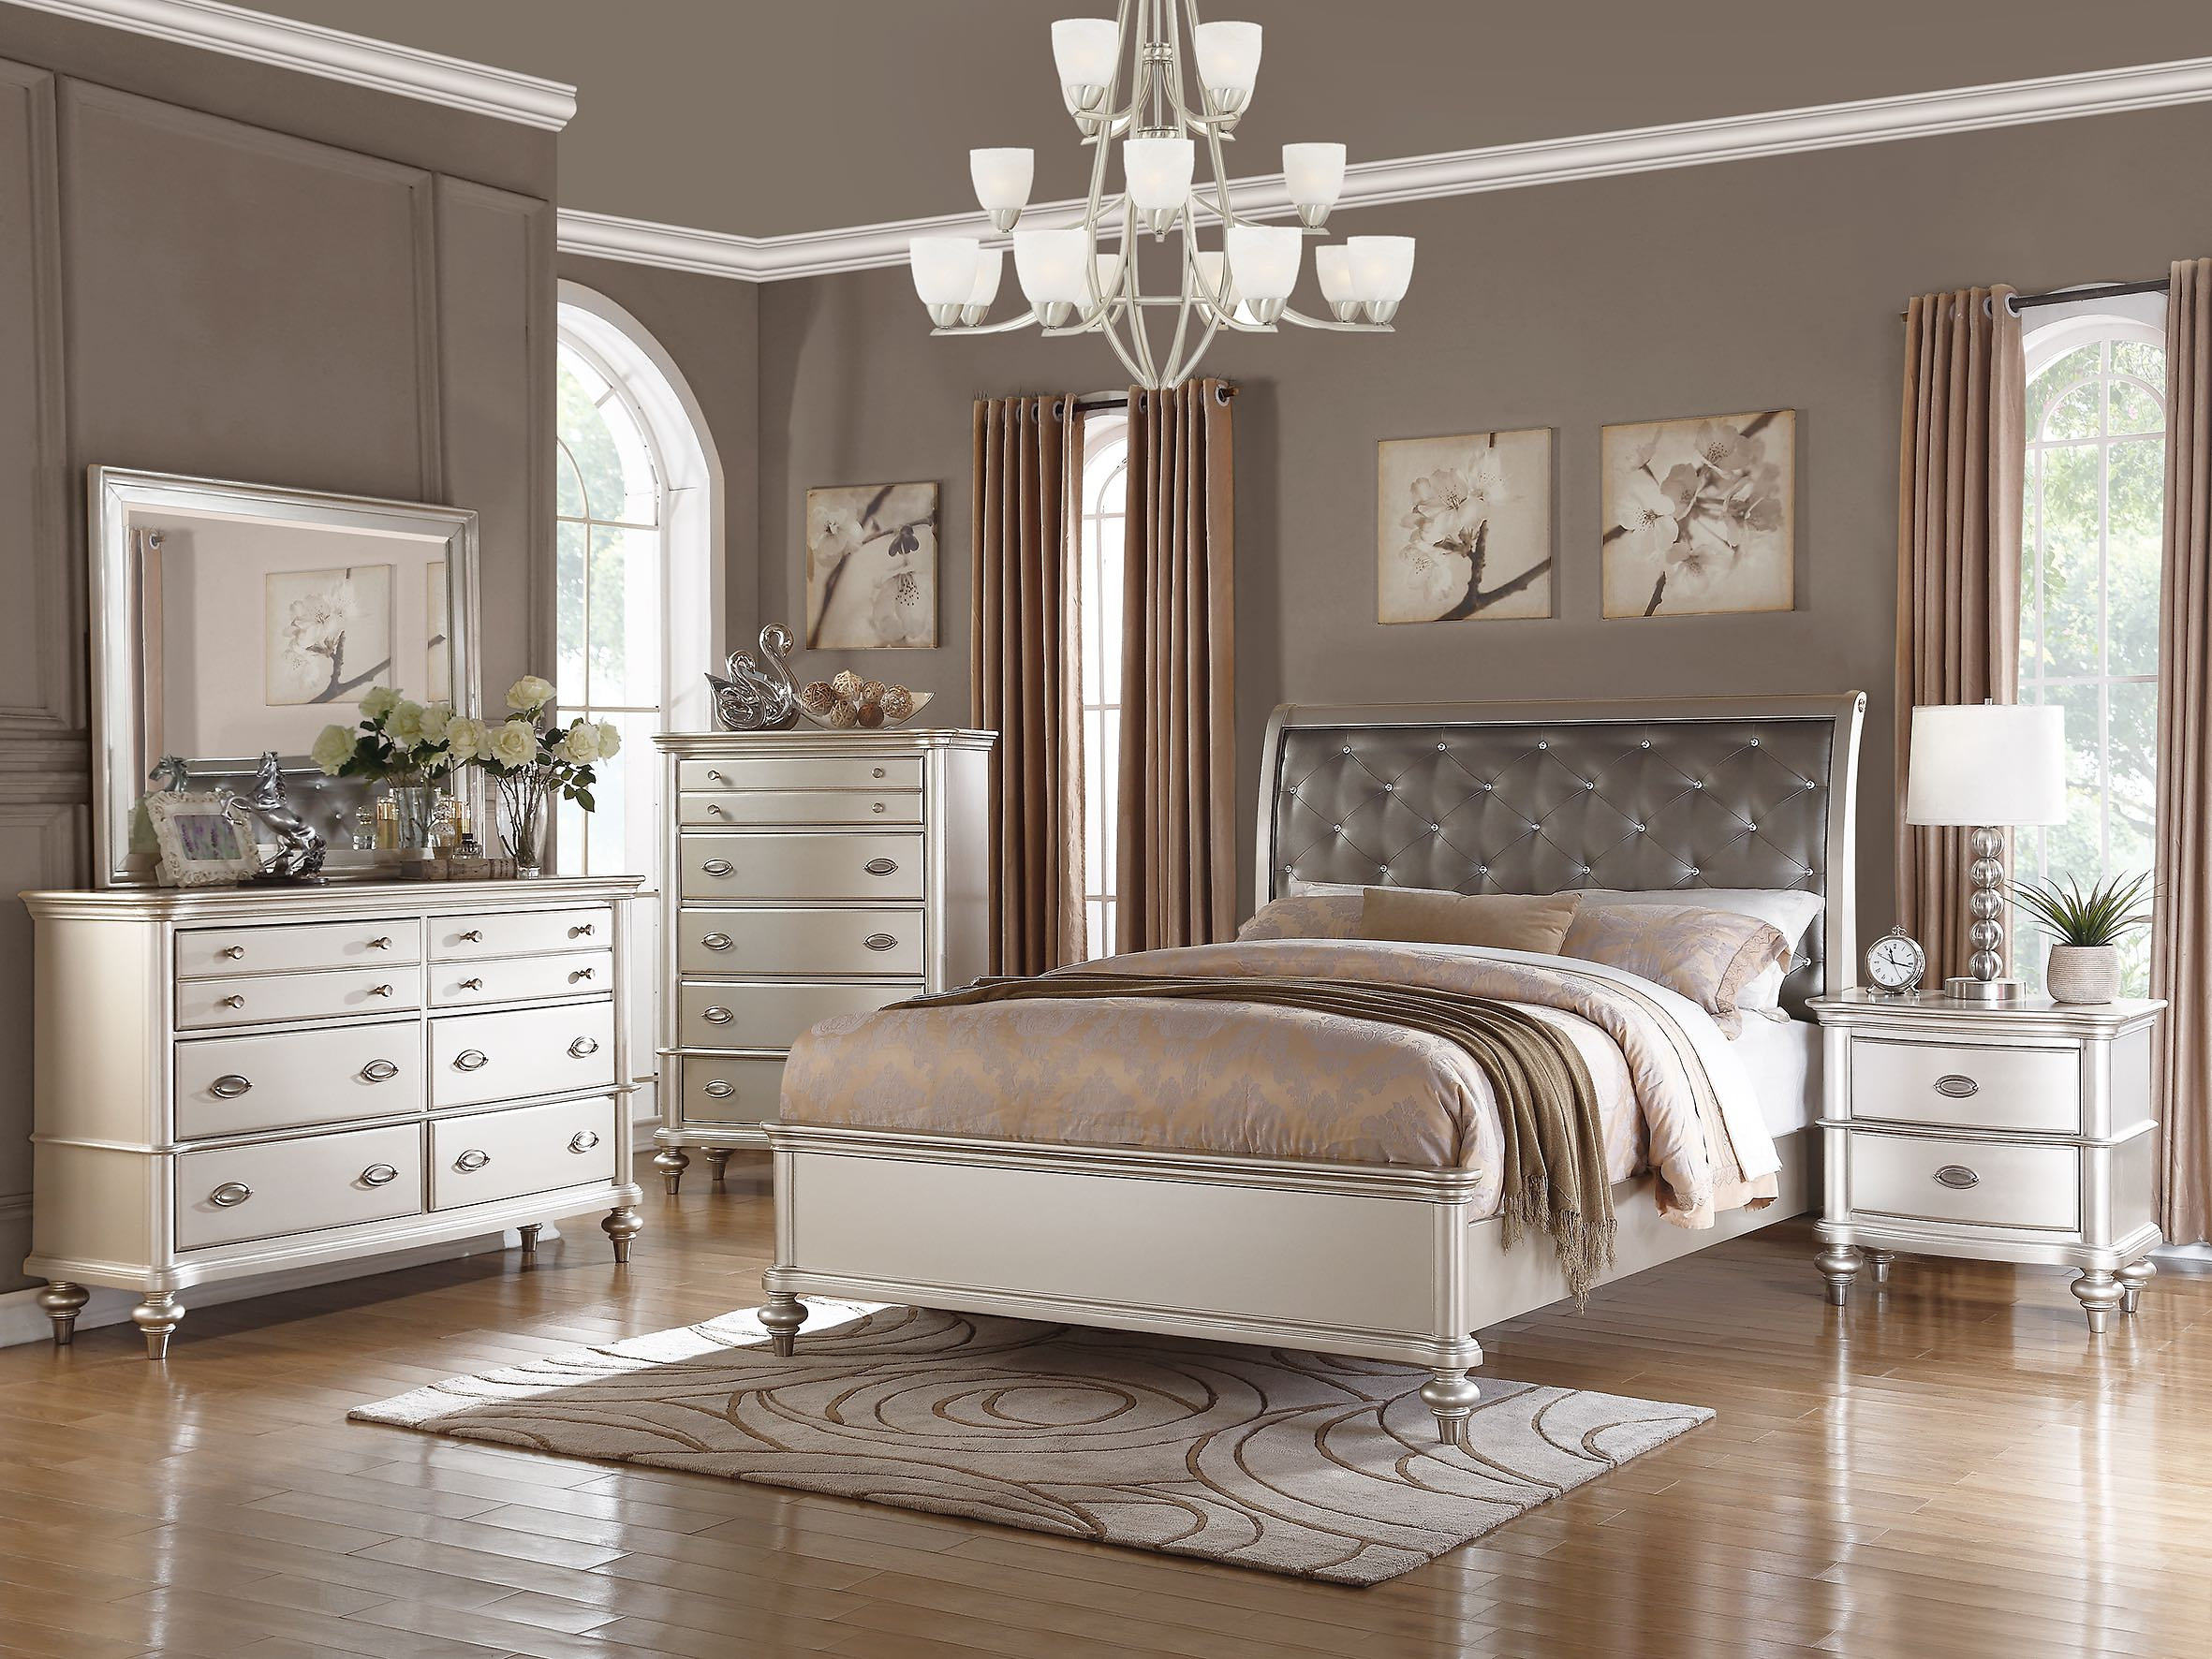 Antique Silver Queen Bed. Amavi Designs   Quality Furniture at Amazing Prices   Antique